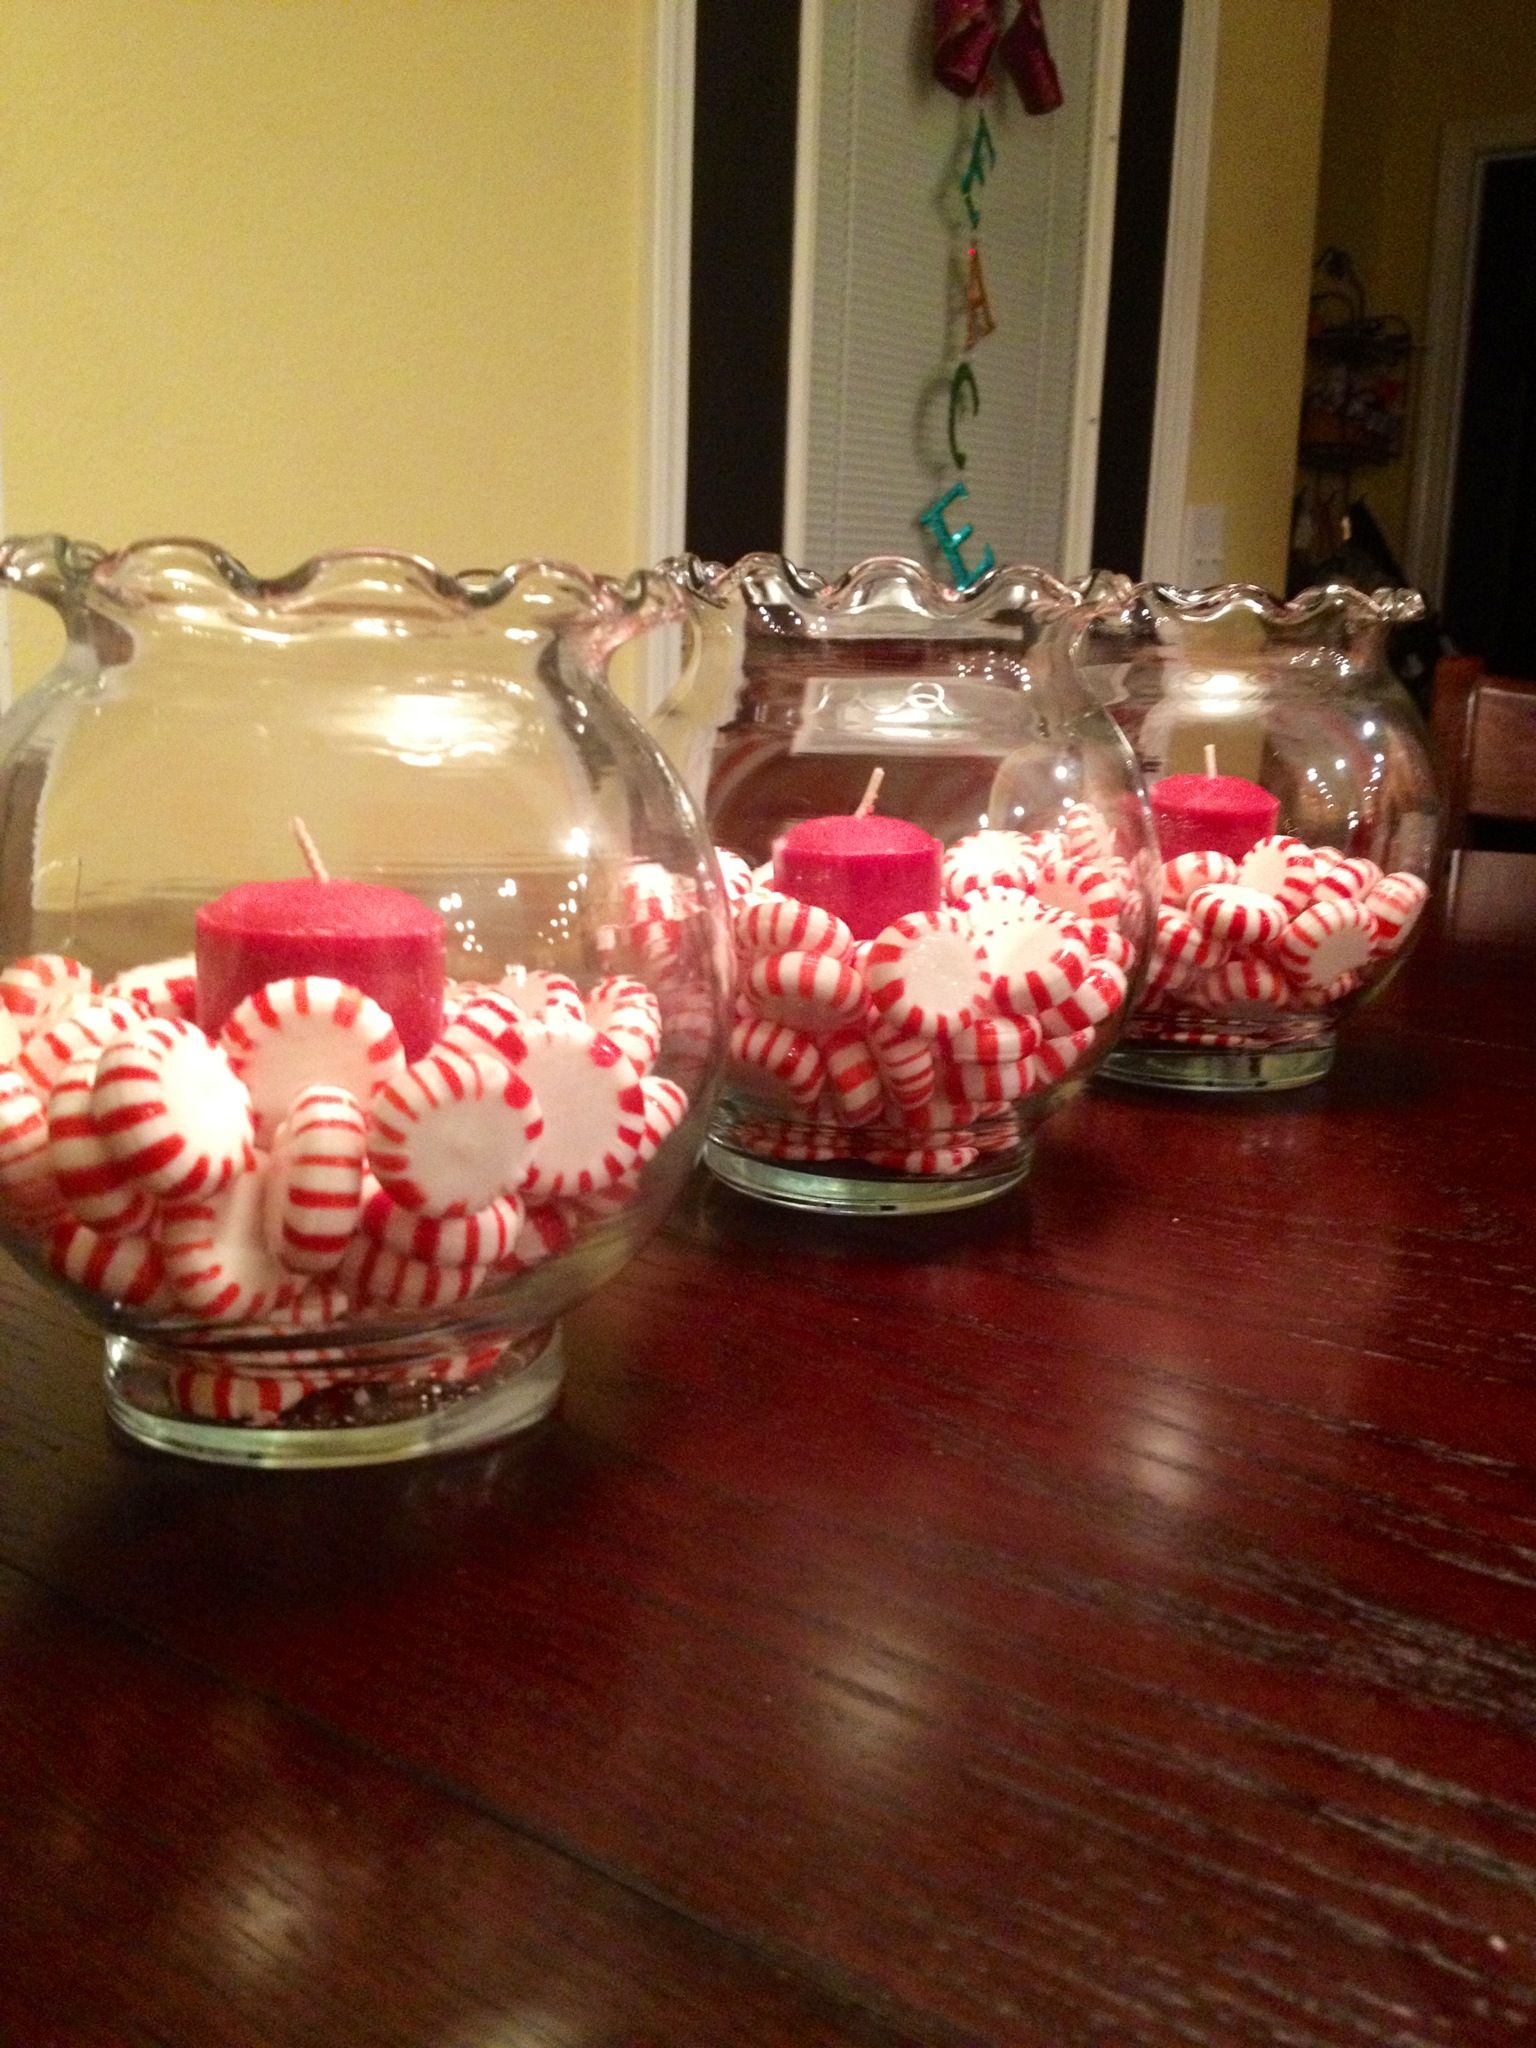 17 Wedding Centerpieces You Can Use On A Low Budget For Any Season. Posted on August 31, #2 Floating bowl surrounded by lighted candles for a great wedding centerpiece. #5 Water beads in stacked fish bowls great for a wedding centerpiece.